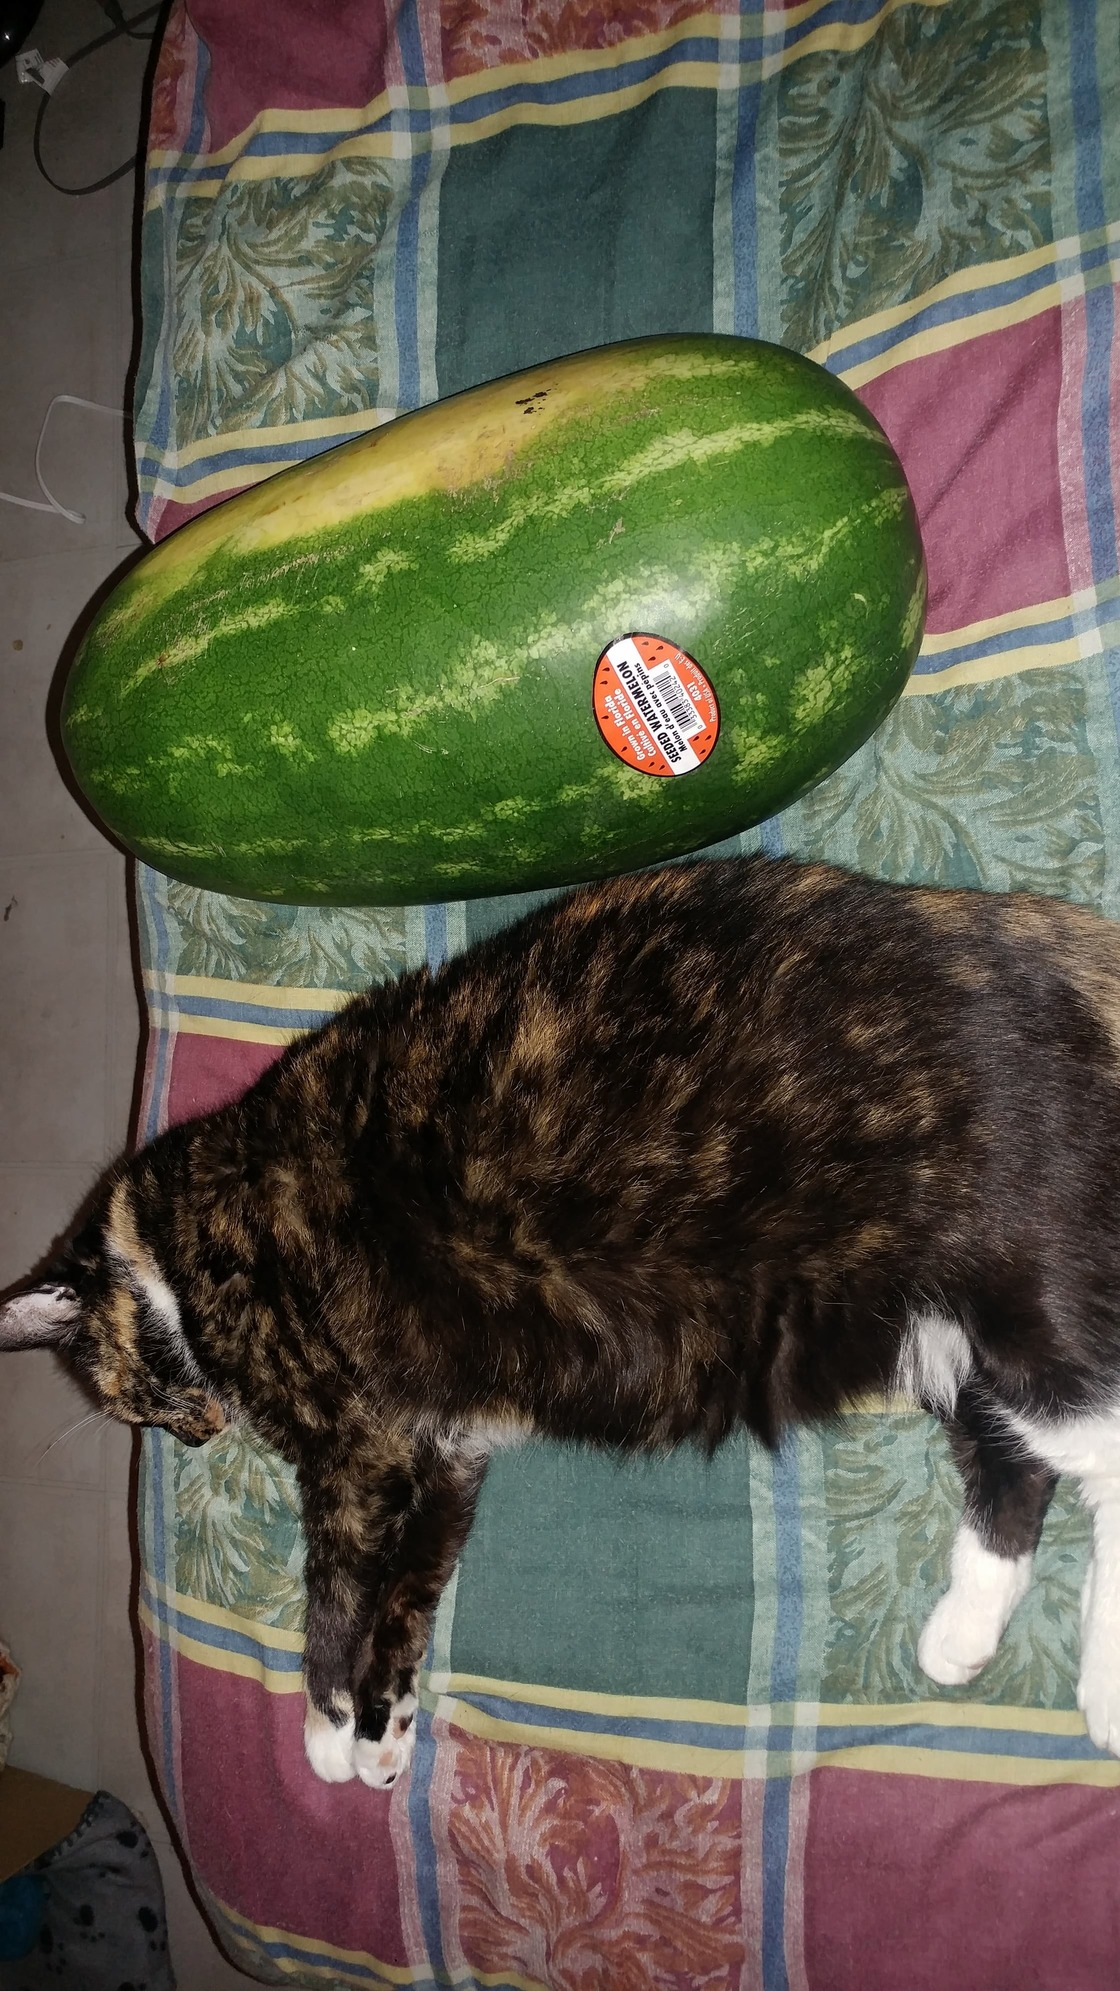 Sheba at 16. her sister passed recently. shes my best friend and then only thing left i care about. jumbo watermelon for scale